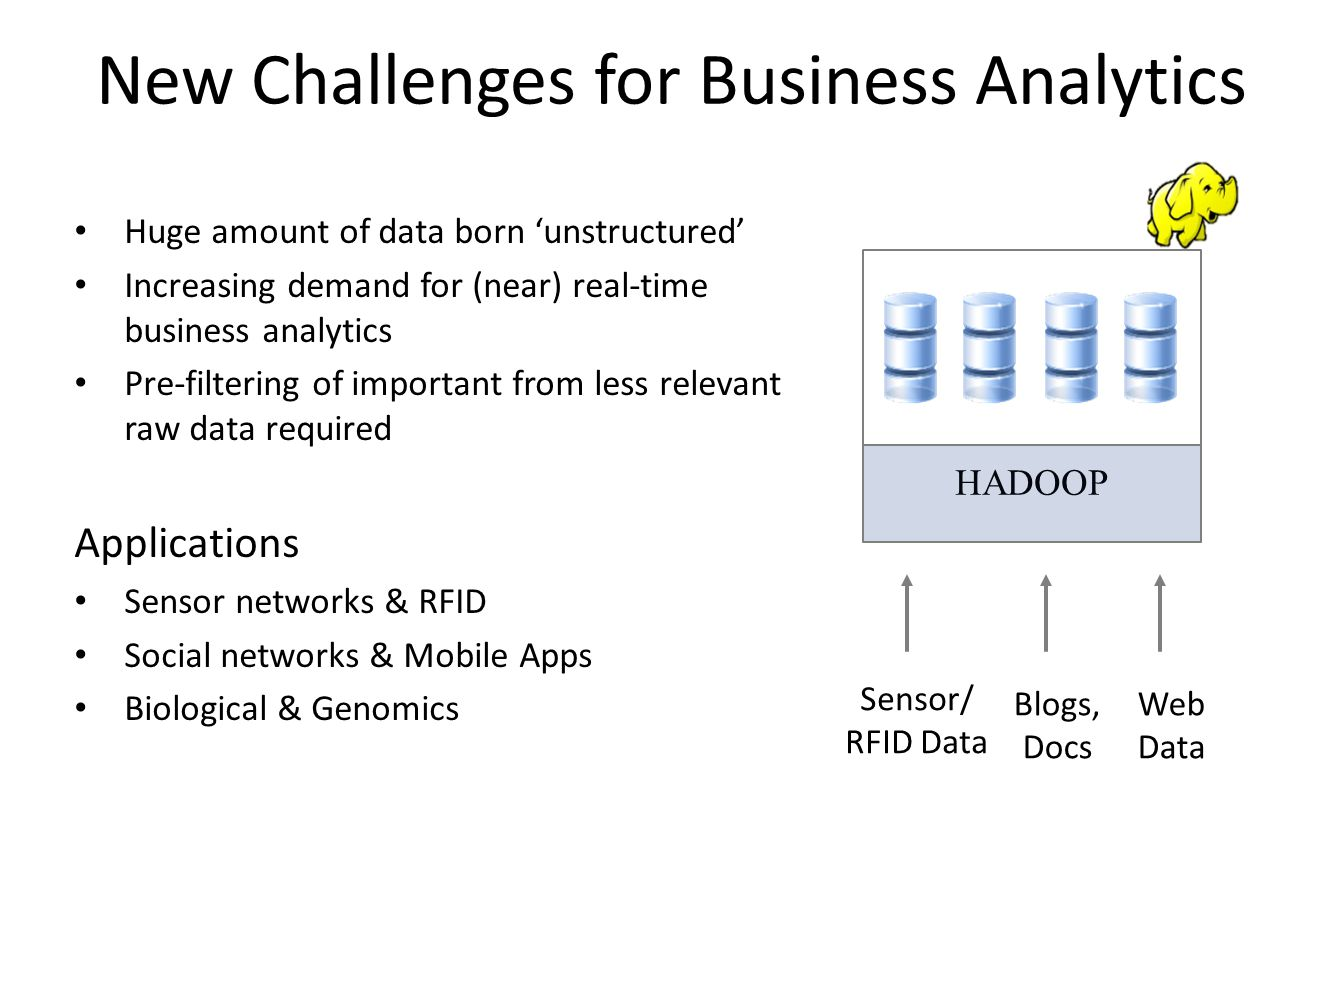 New Challenges for Business Analytics Huge amount of data born 'unstructured' Increasing demand for (near) real-time business analytics Pre-filtering of important from less relevant raw data required Applications Sensor networks & RFID Social networks & Mobile Apps Biological & Genomics Sensor/ RFID Data Blogs, Docs Web Data HADOOP